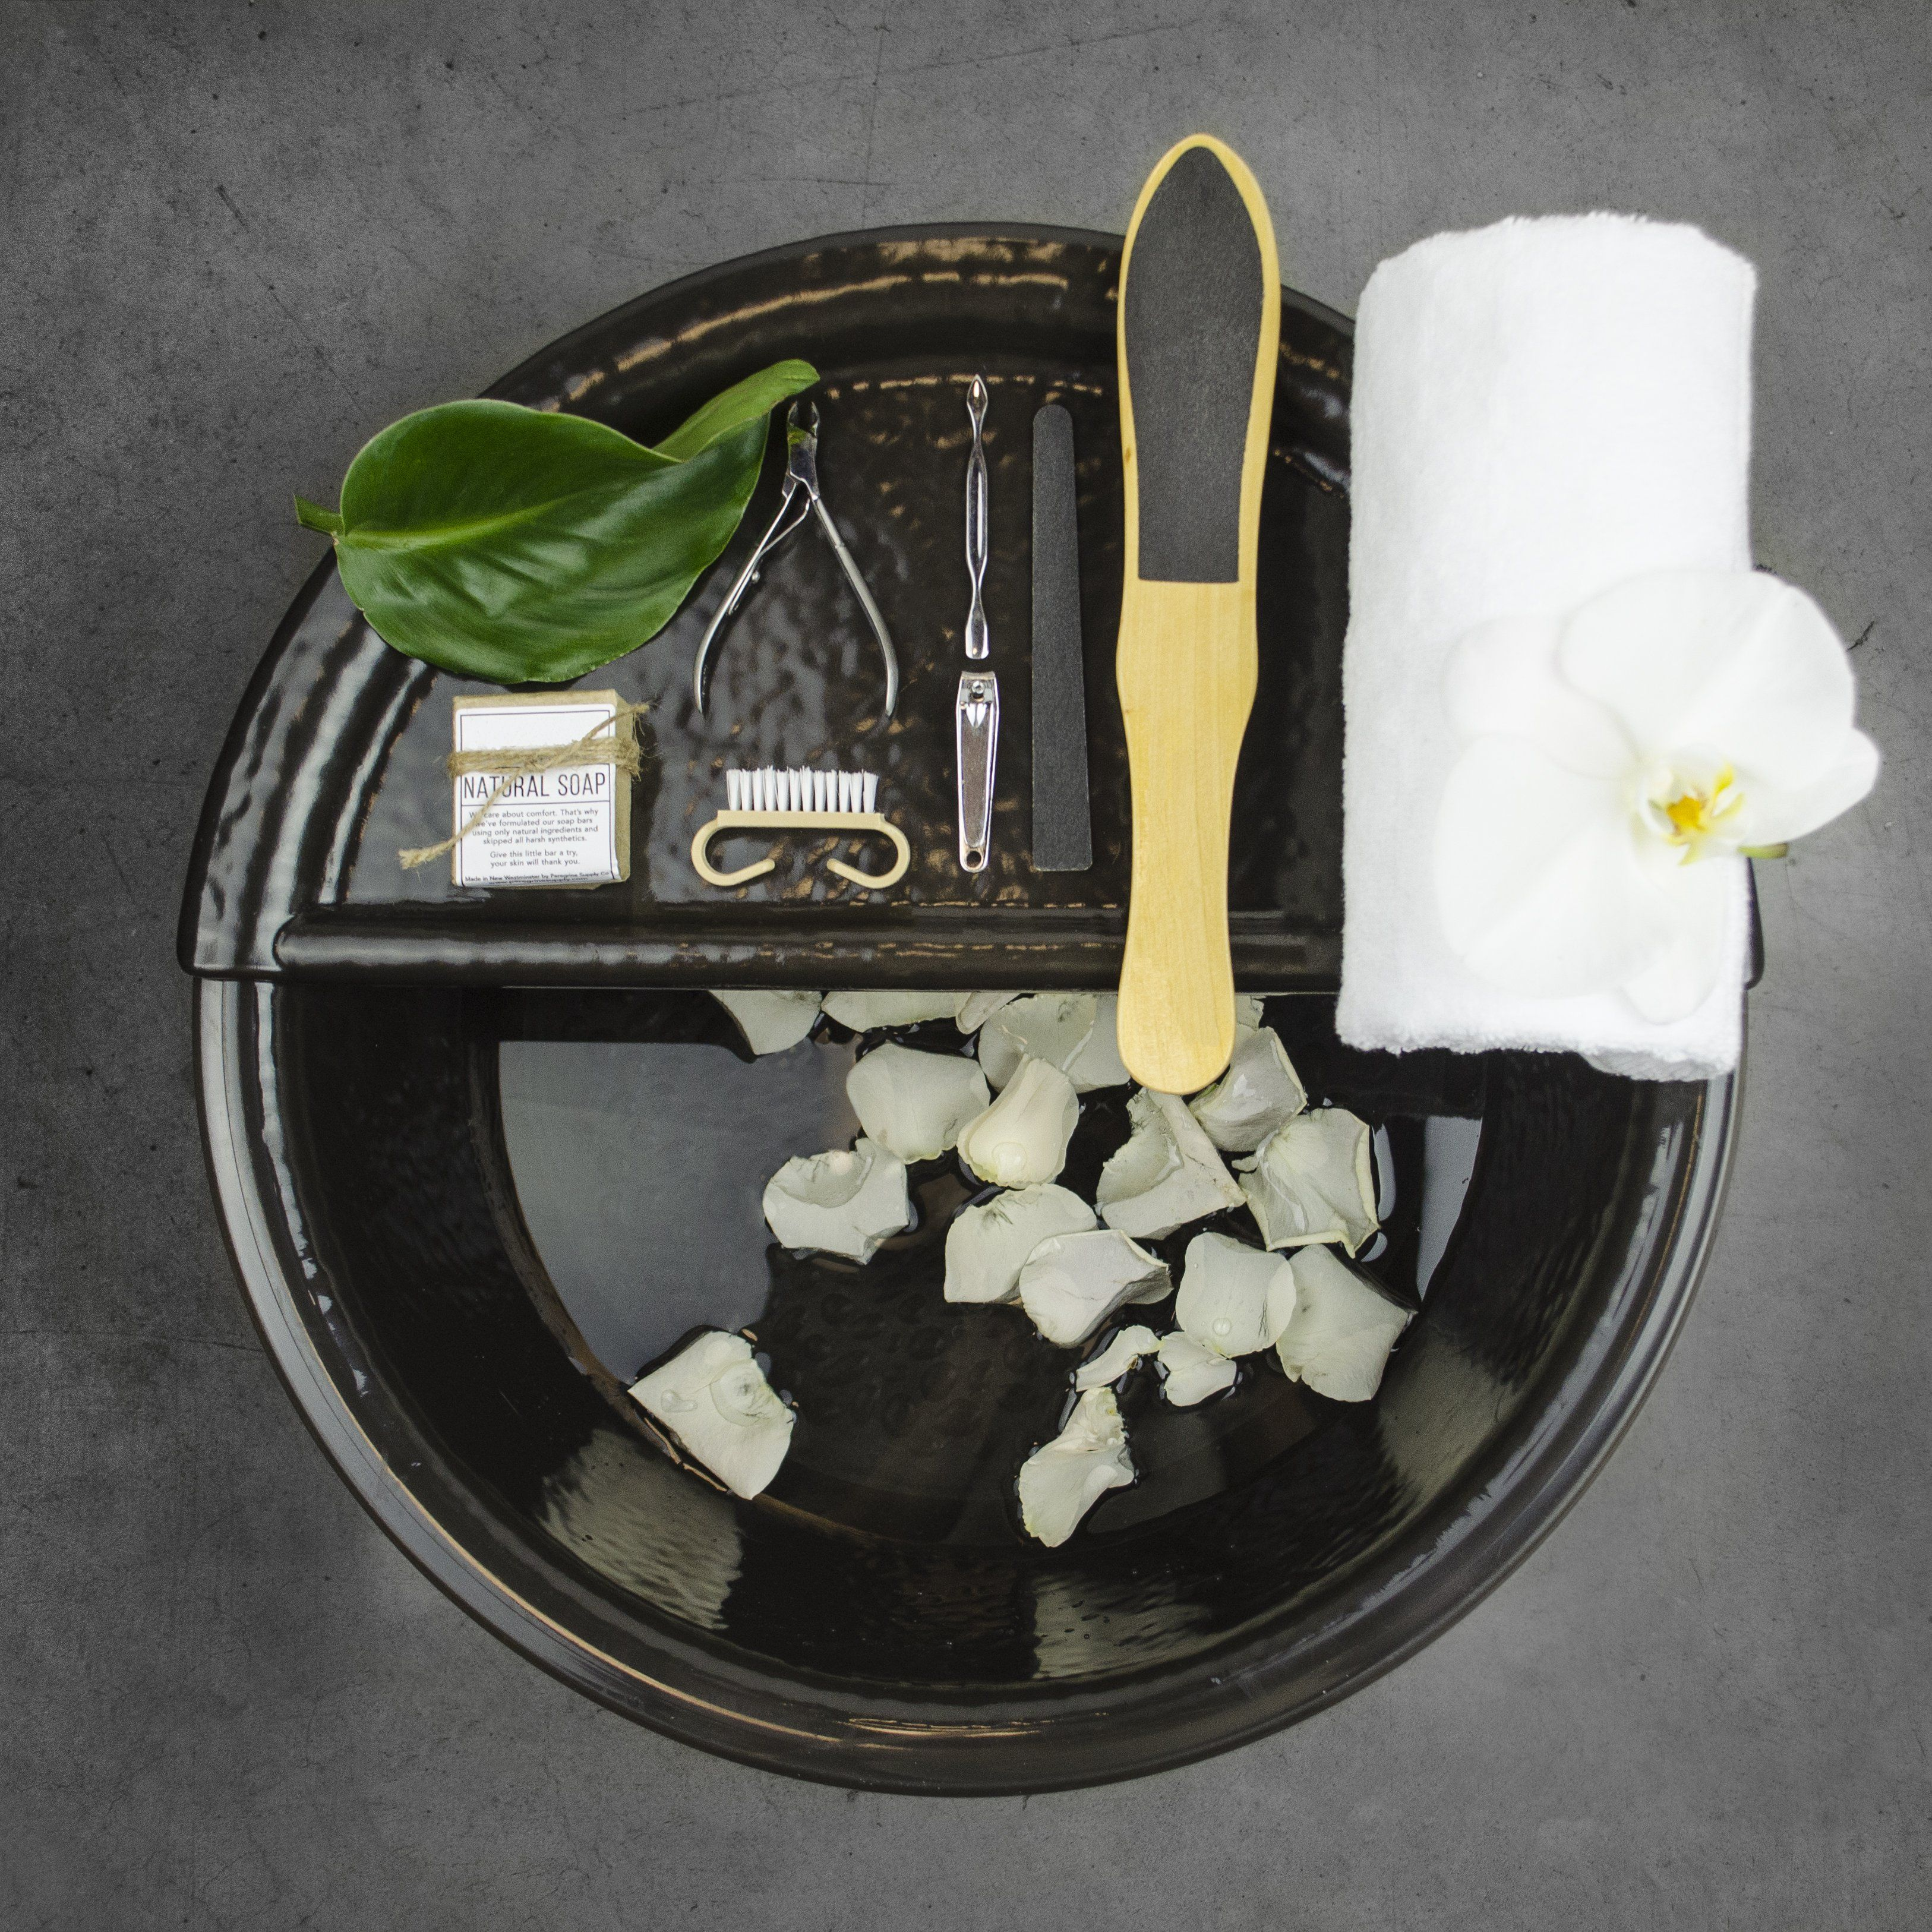 Pedicure Bowls and Manicure Bowls for the most stylish stylist station